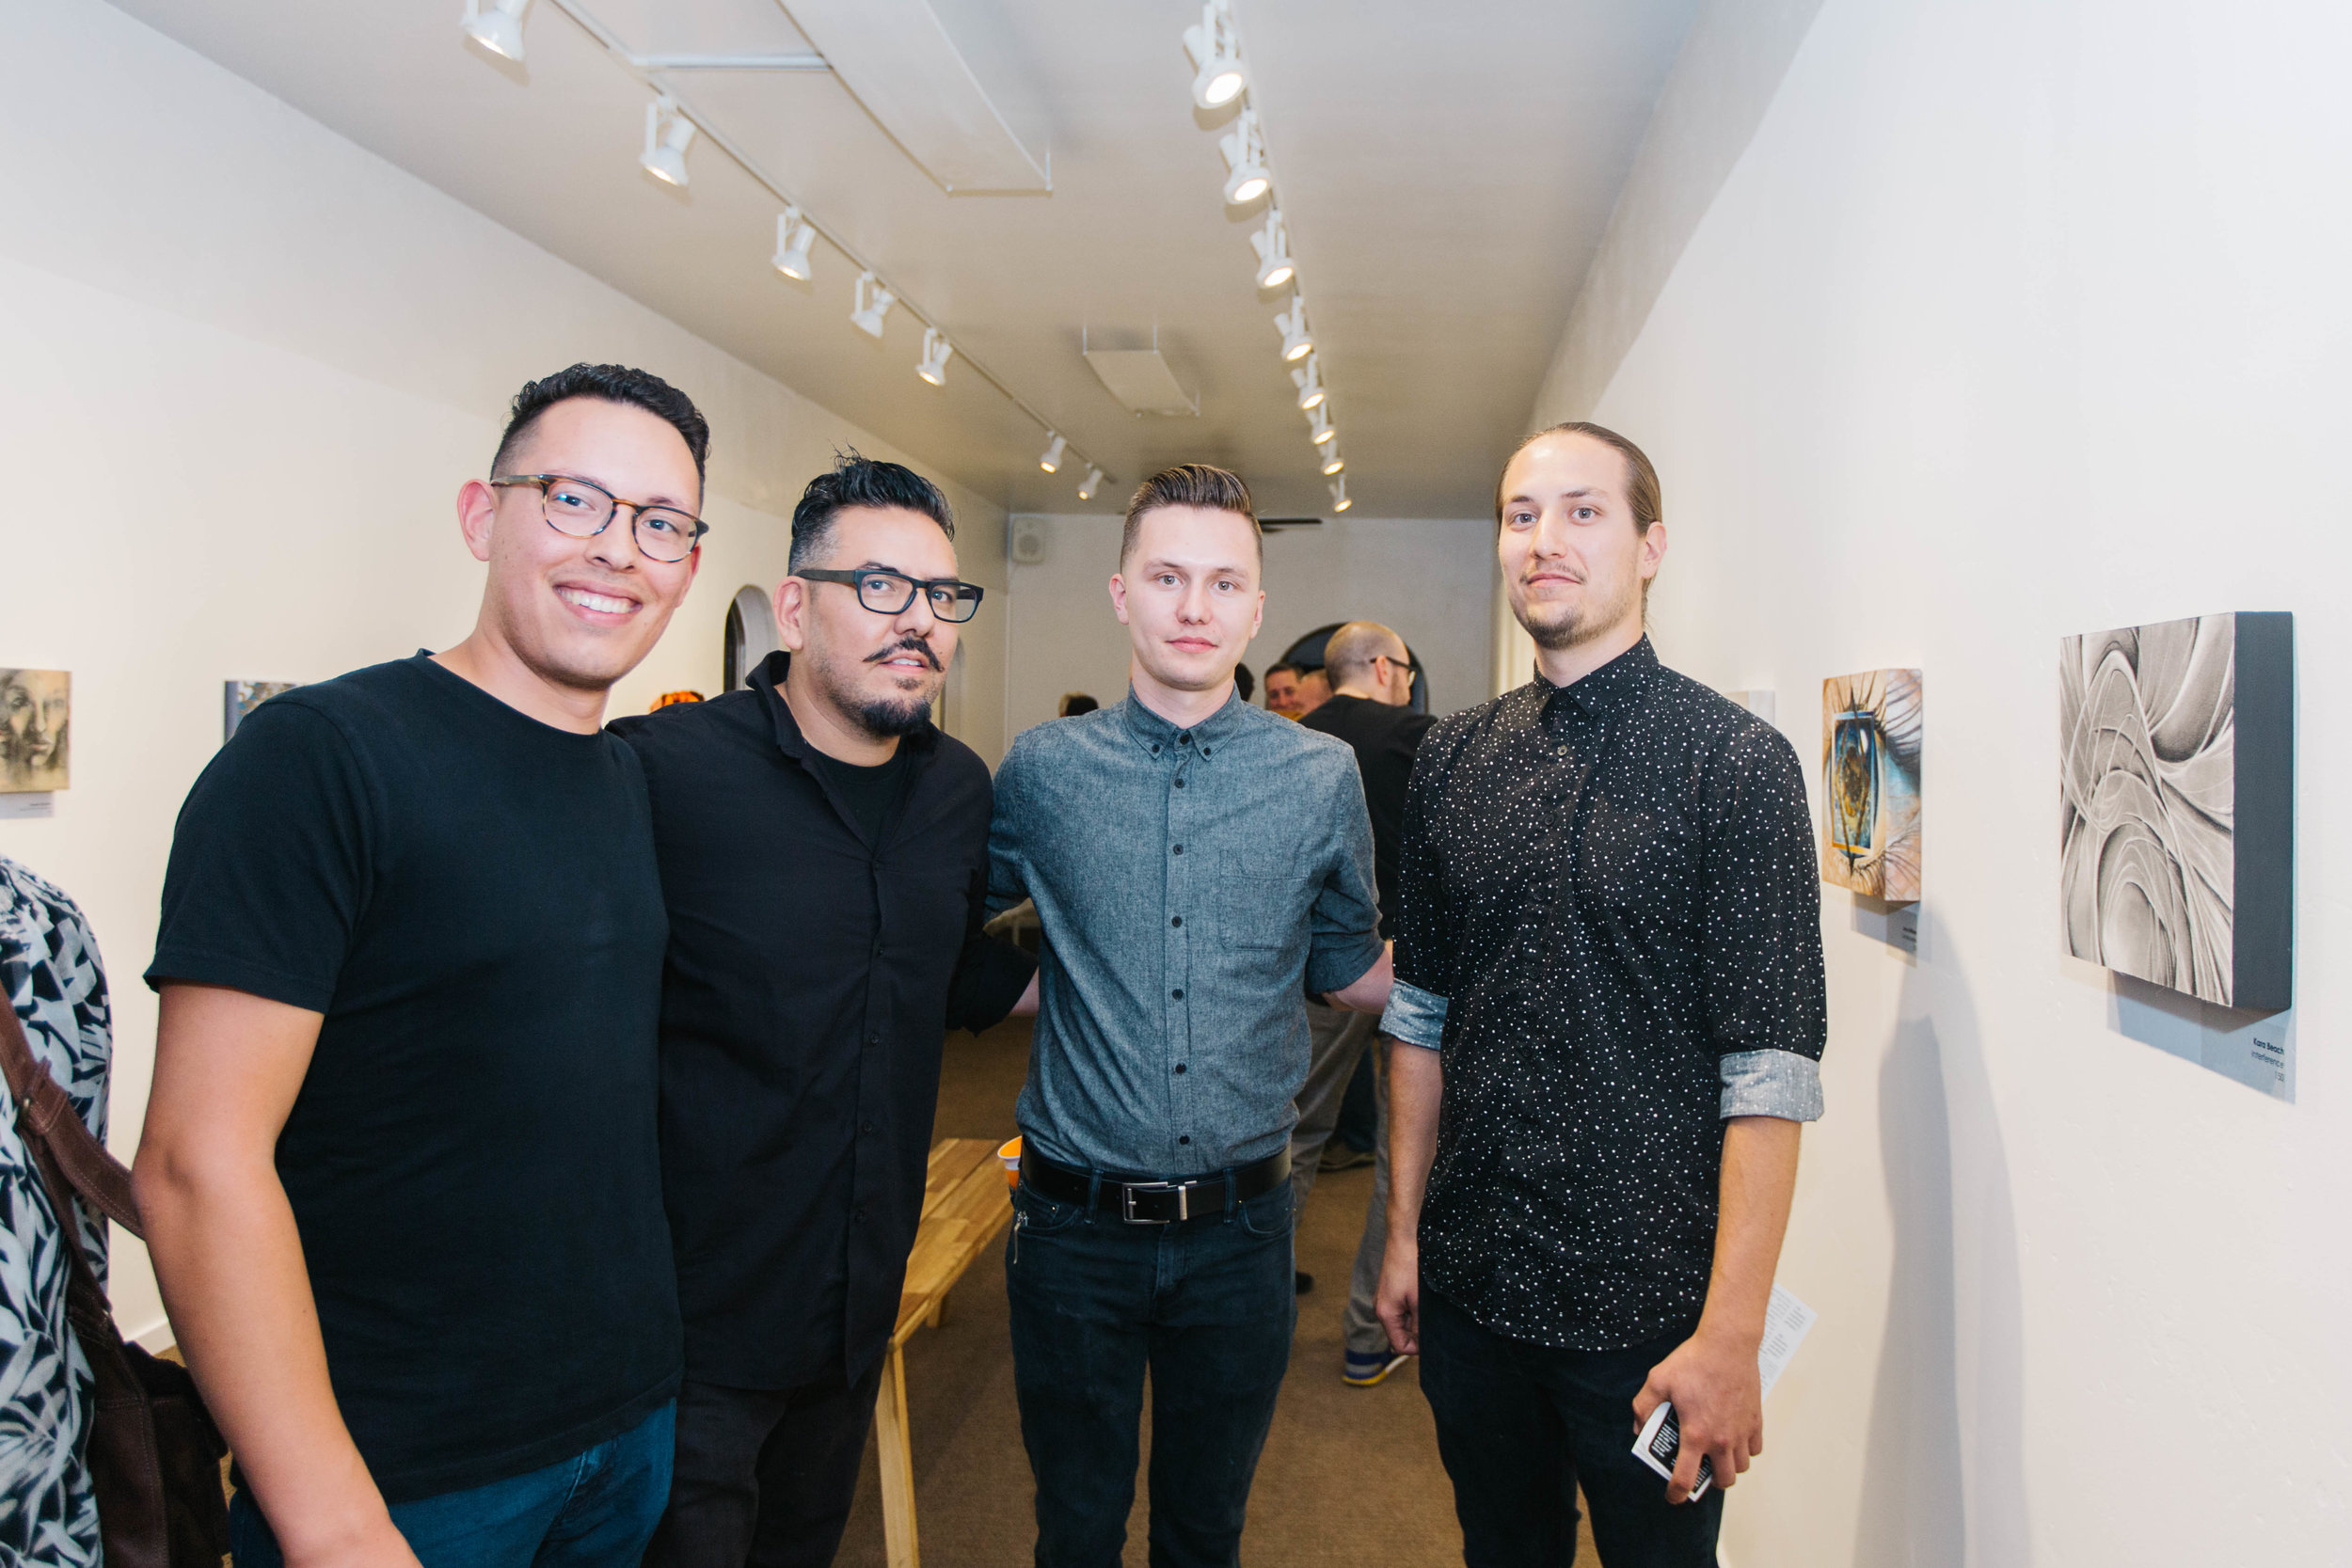 Artist Collin Williams with gallery owners Joseph Gonzalez, Regan Jericho, and Christian Uriah.